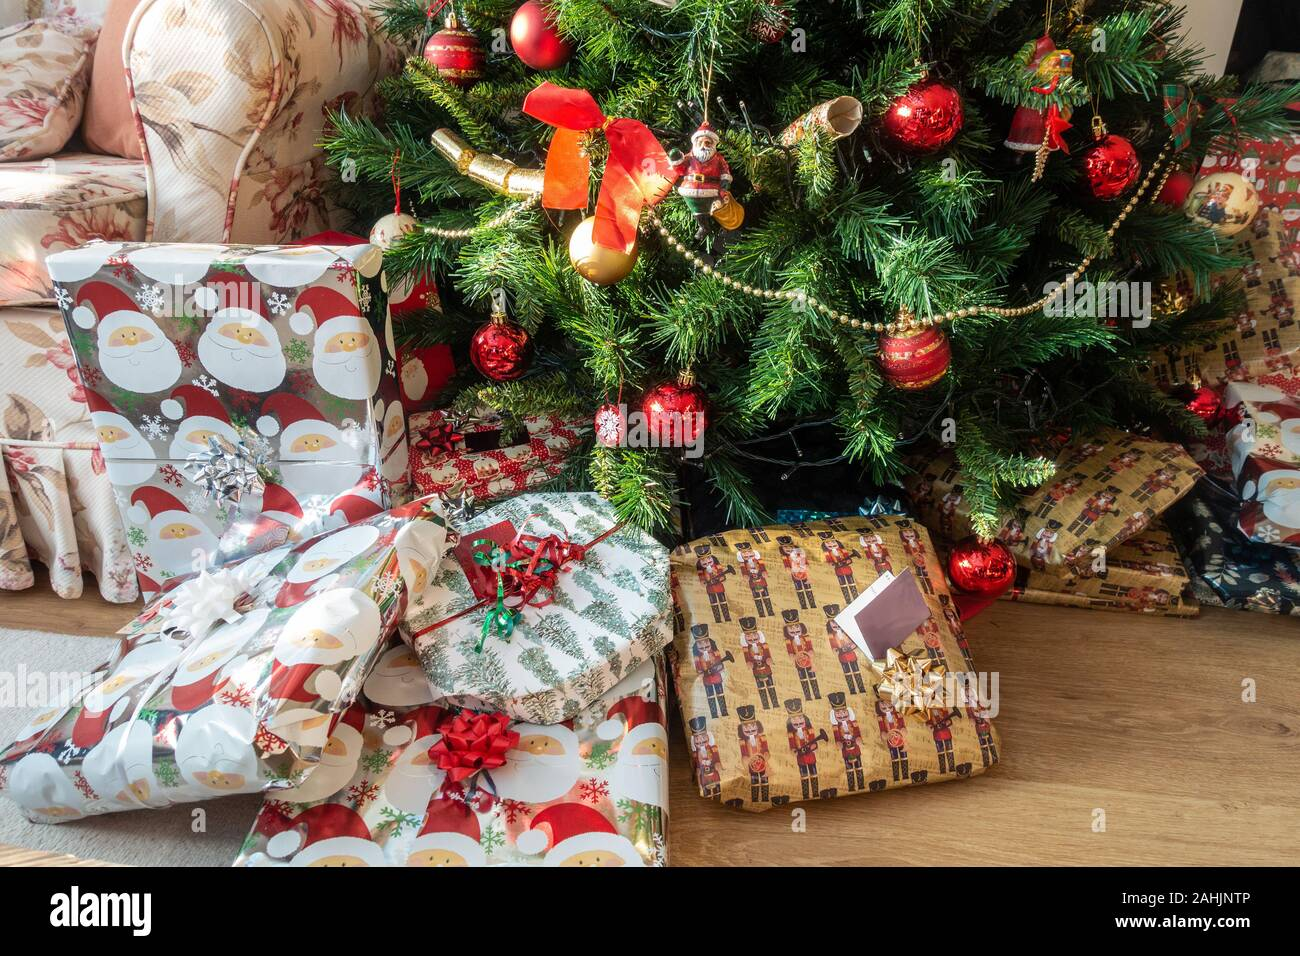 christmas-presents-on-the-floor-underneath-a-christmas-tree-decorated-with-gold-and-red-baubles-2AHJNTP.jpg